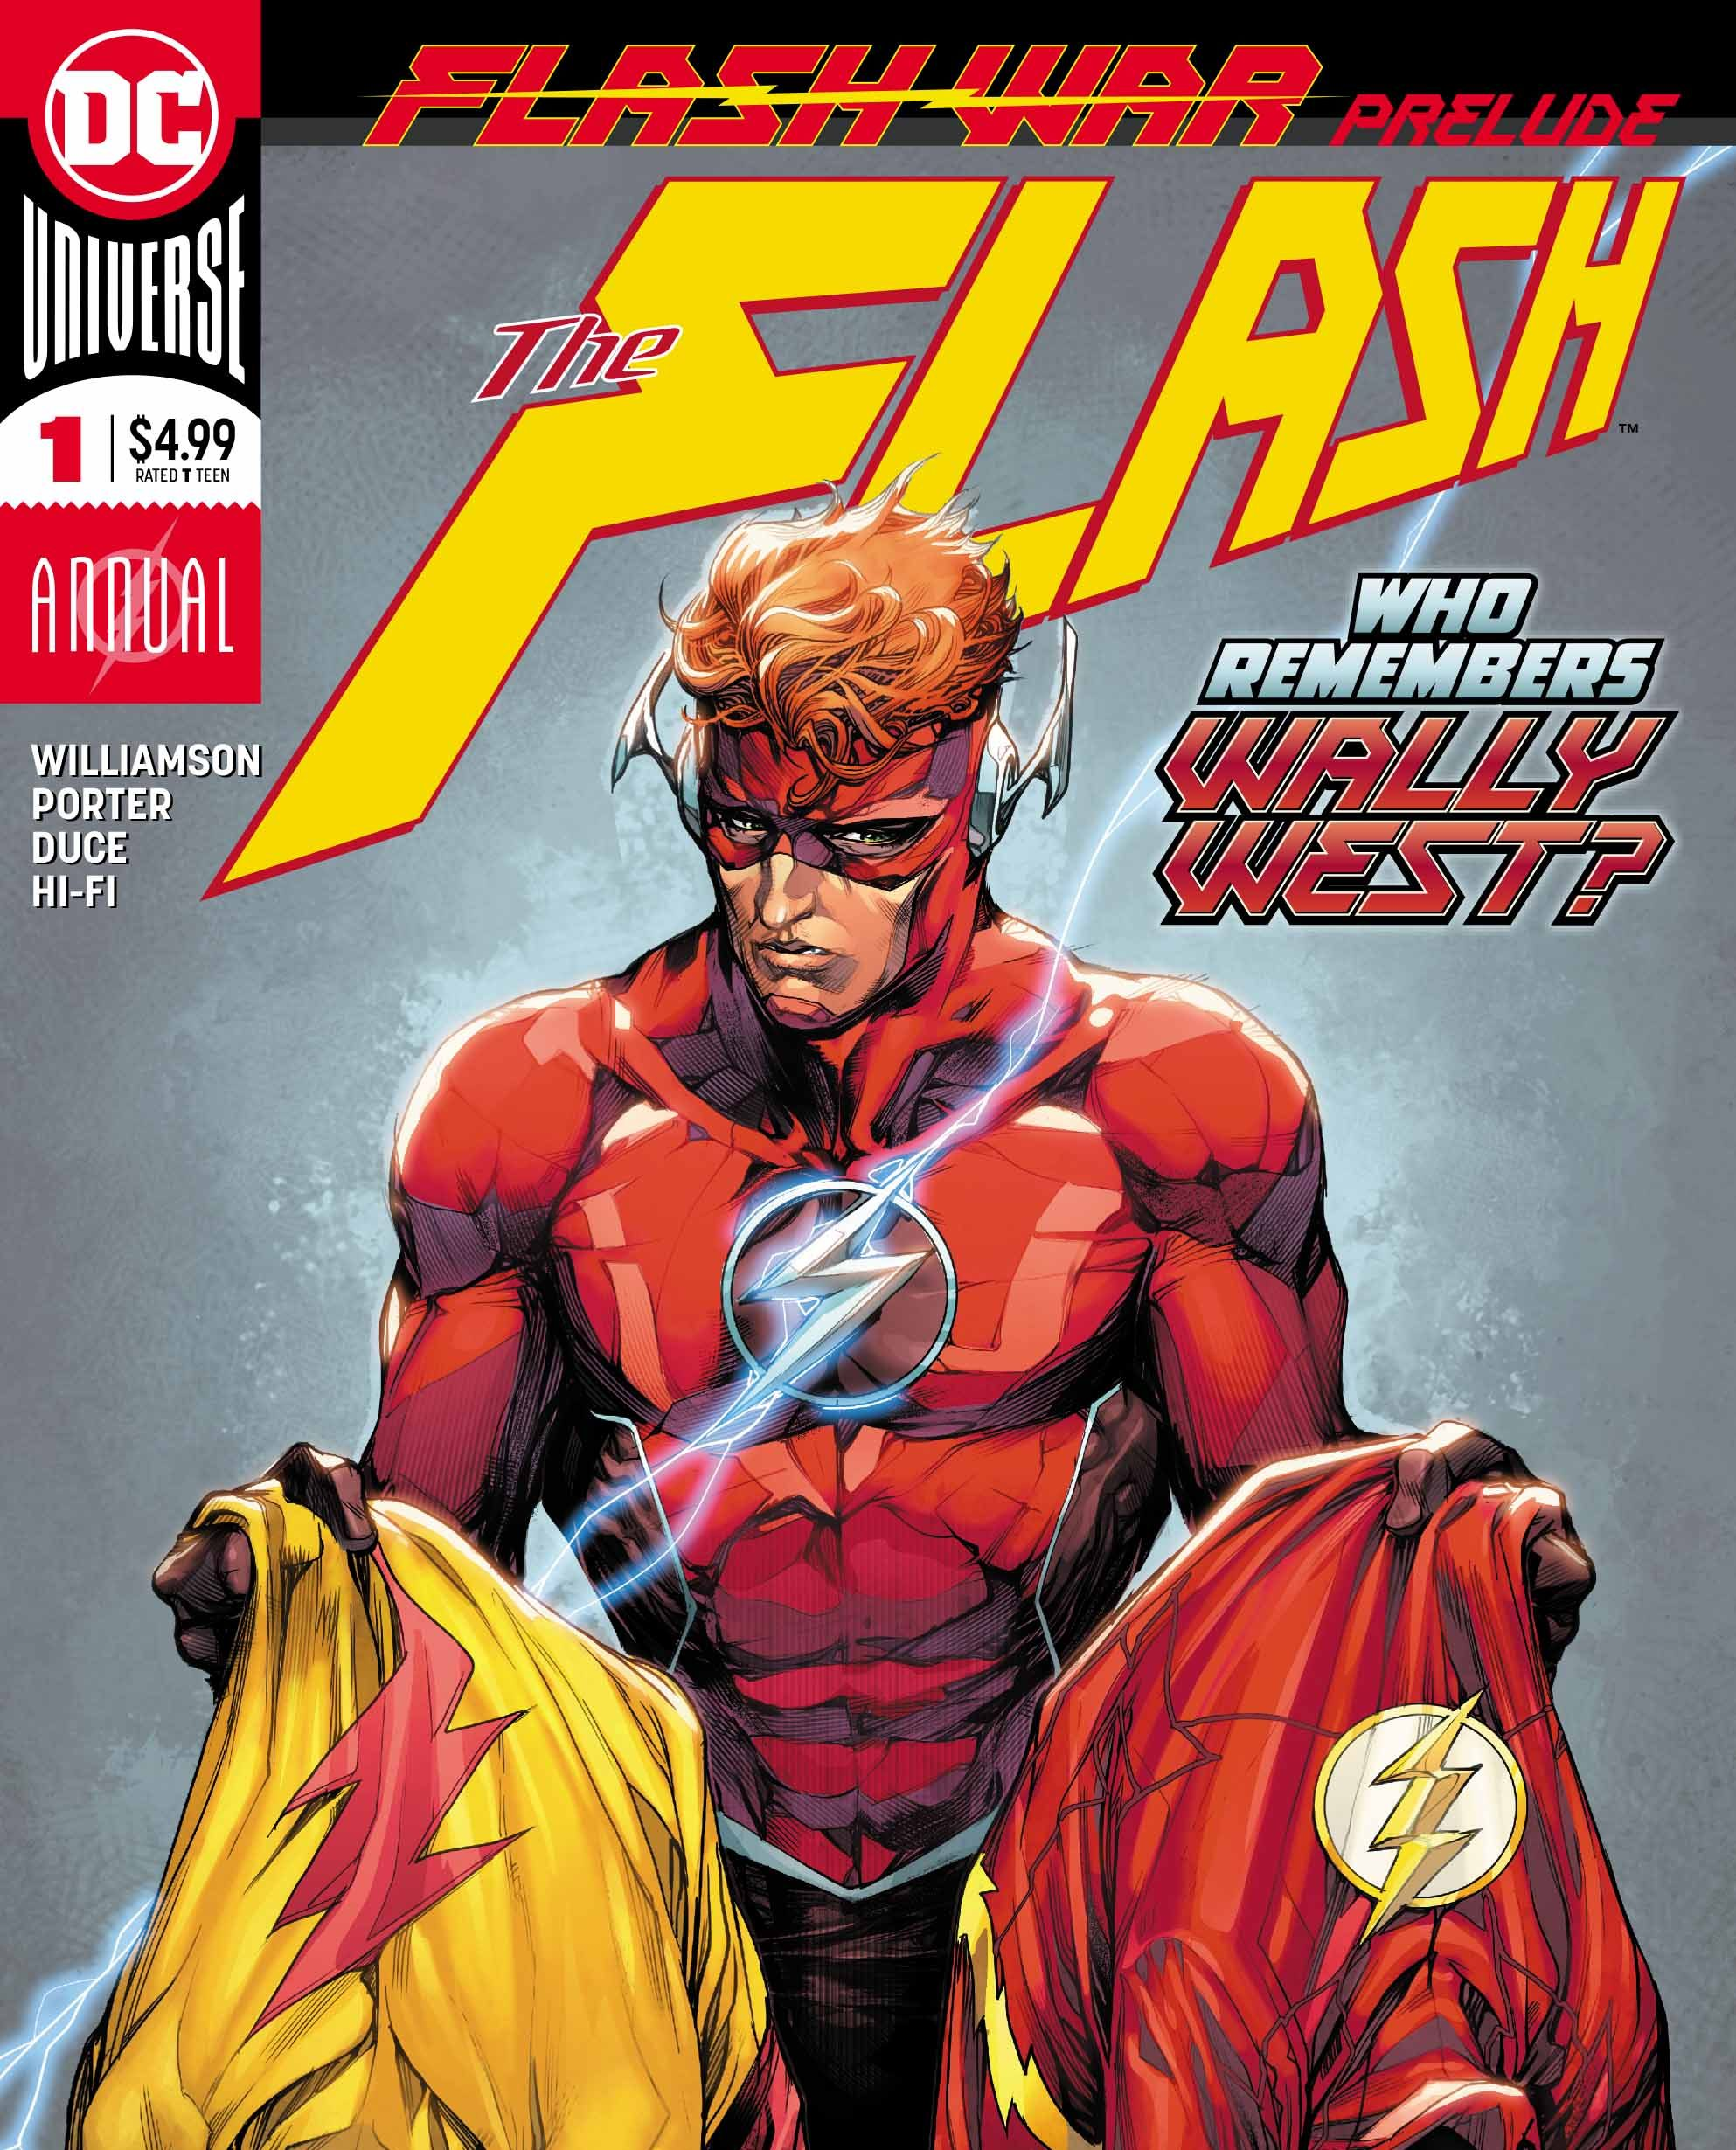 The Flash Annual #1 review: Best Flash story since 2005